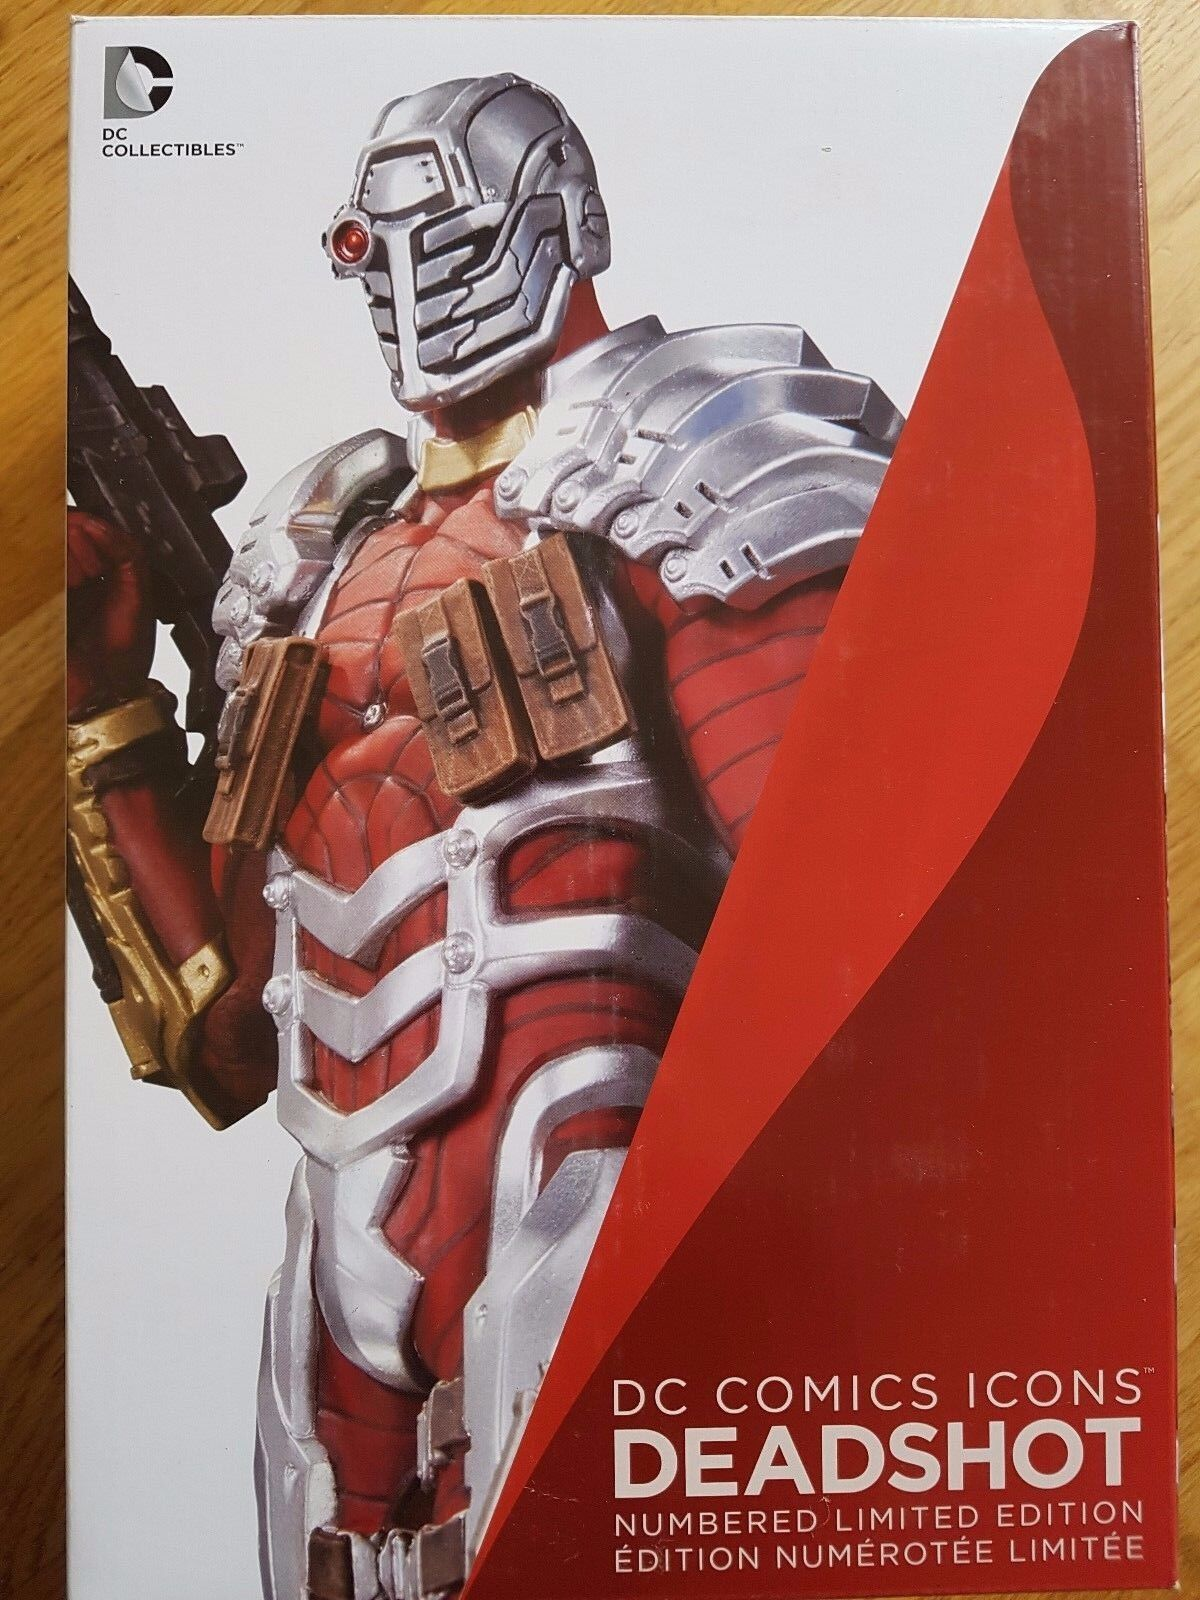 Dc Comics icone DEADSHOT DEADSHOT DEADSHOT Statua UK Venditore 0ba8a8